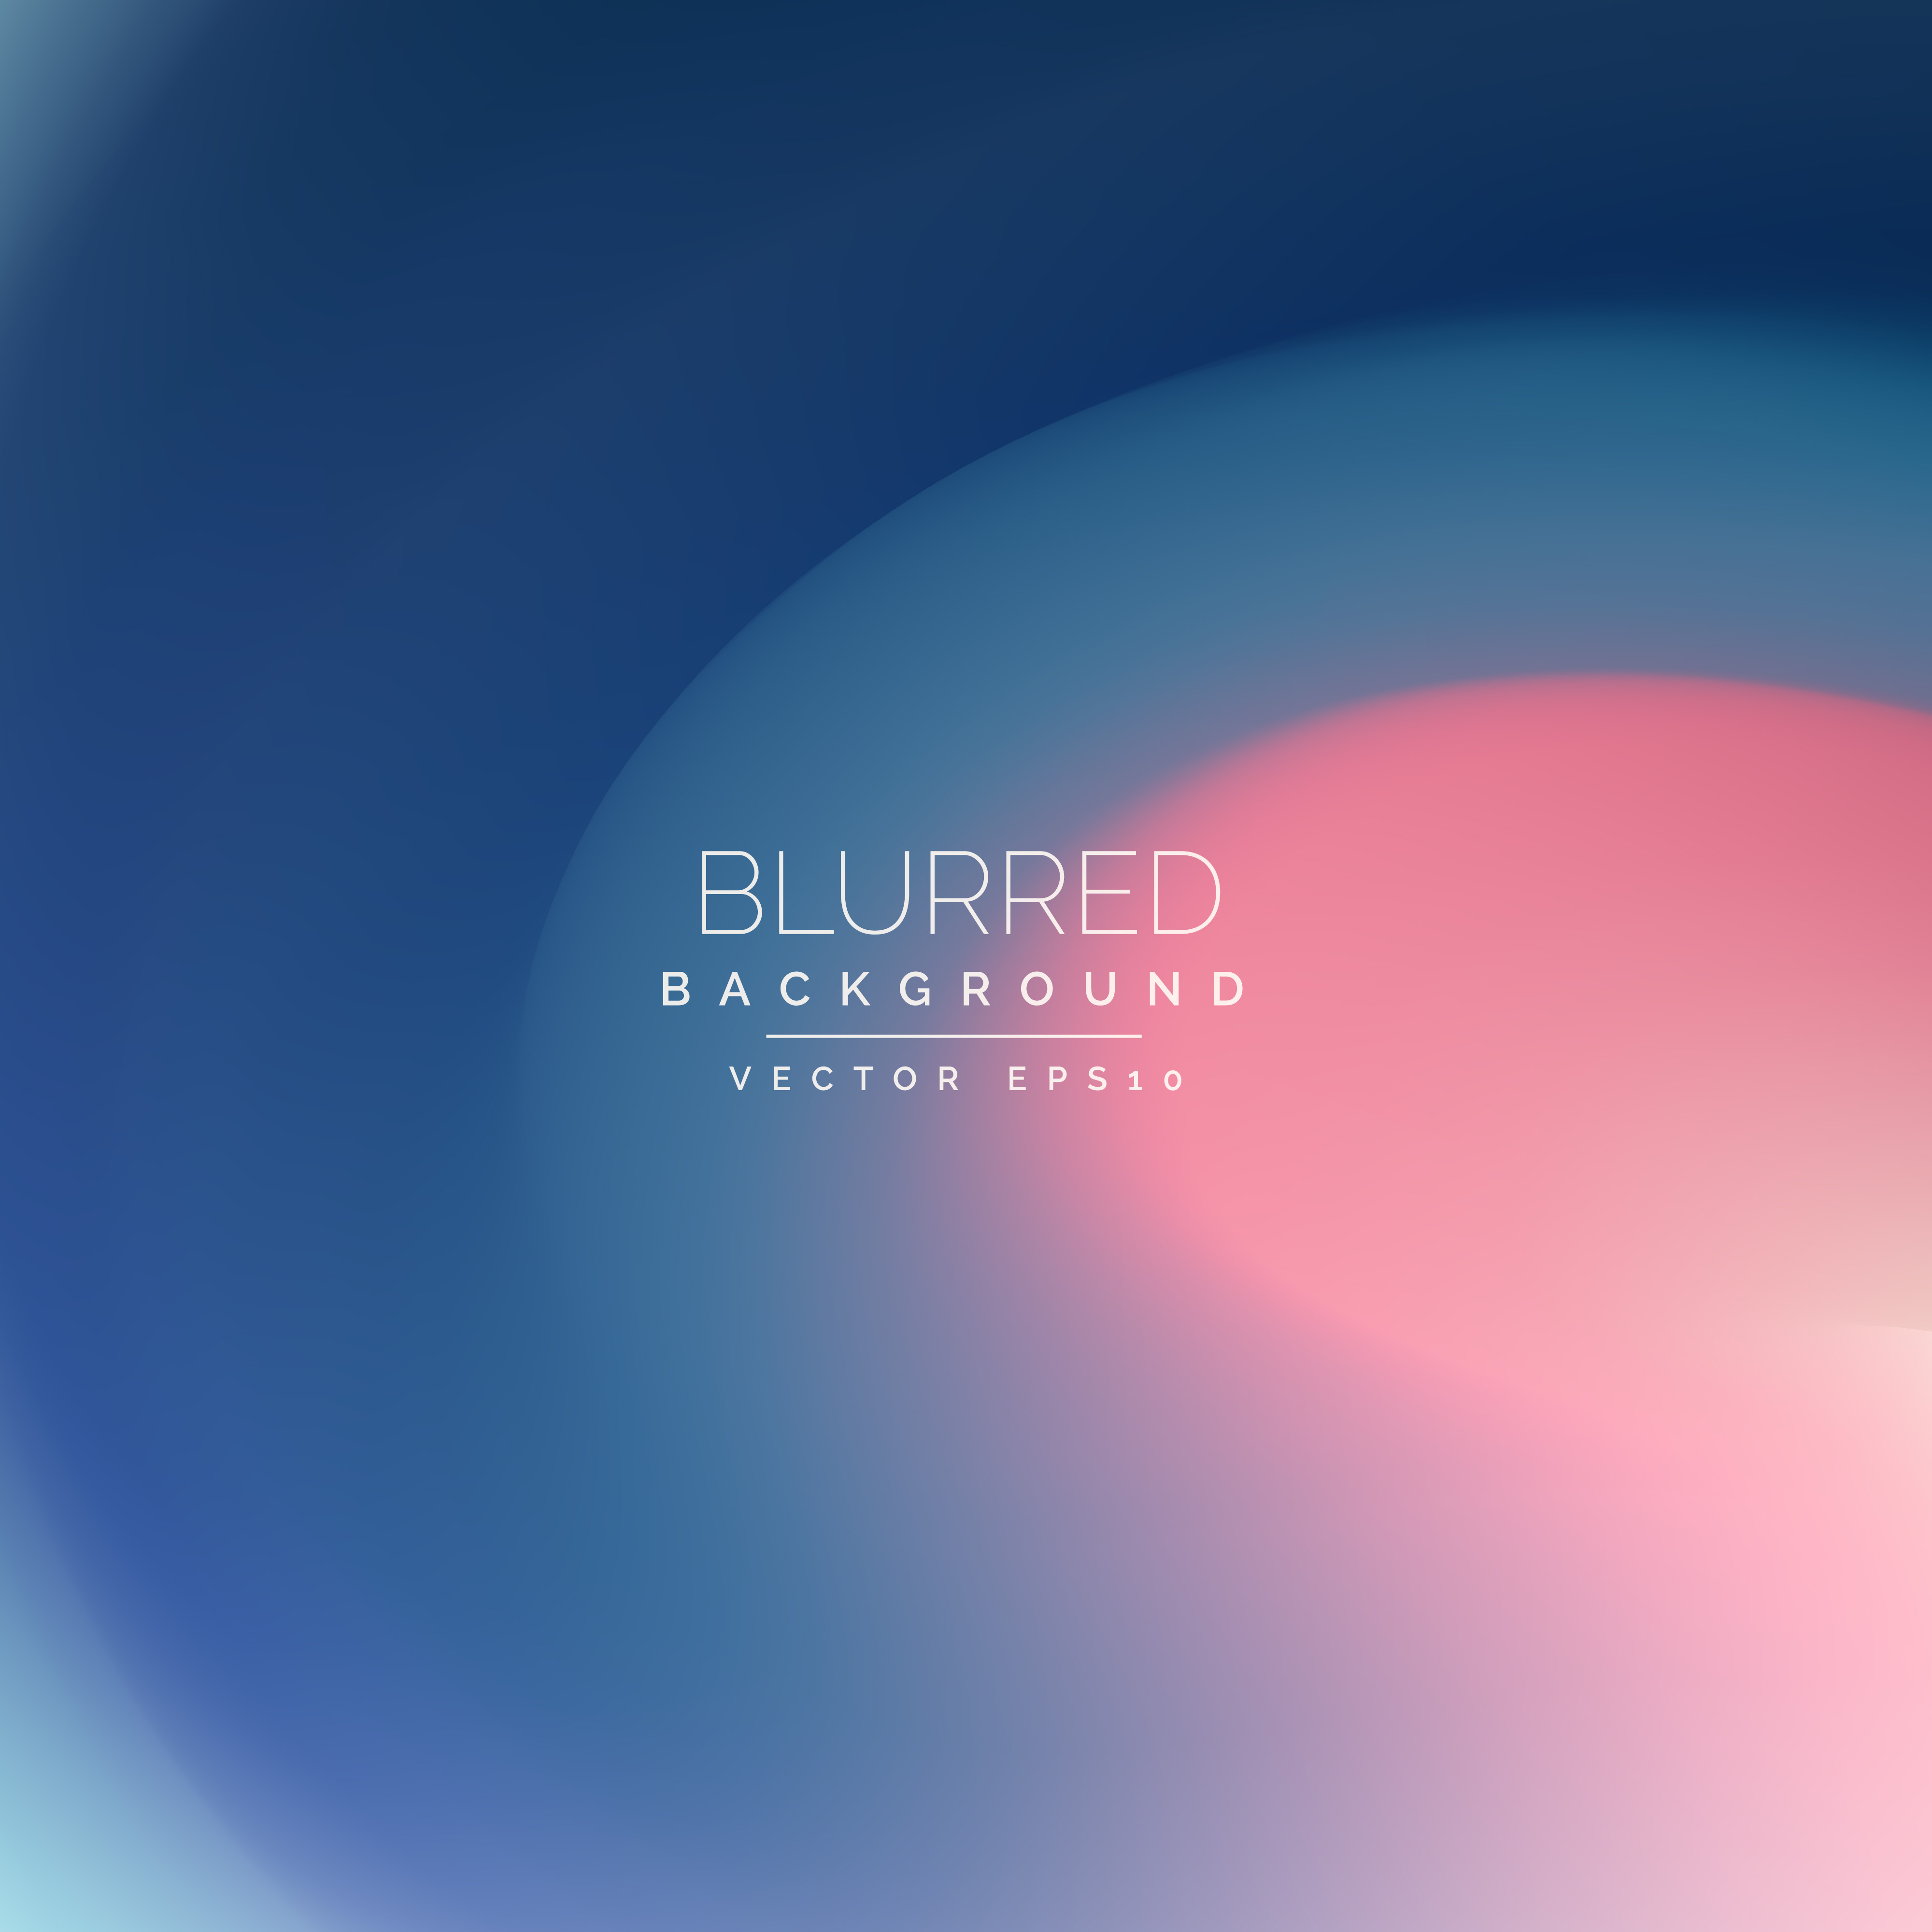 Fulgurant Pink Background Swirl Style Download Free Vector Art Blue Pink Background Blue Pink Background Photos Blue Swirl Style Download Free Vector Stockgraphics Images Blue Pink Background Design dpreview Blue And Pink Background